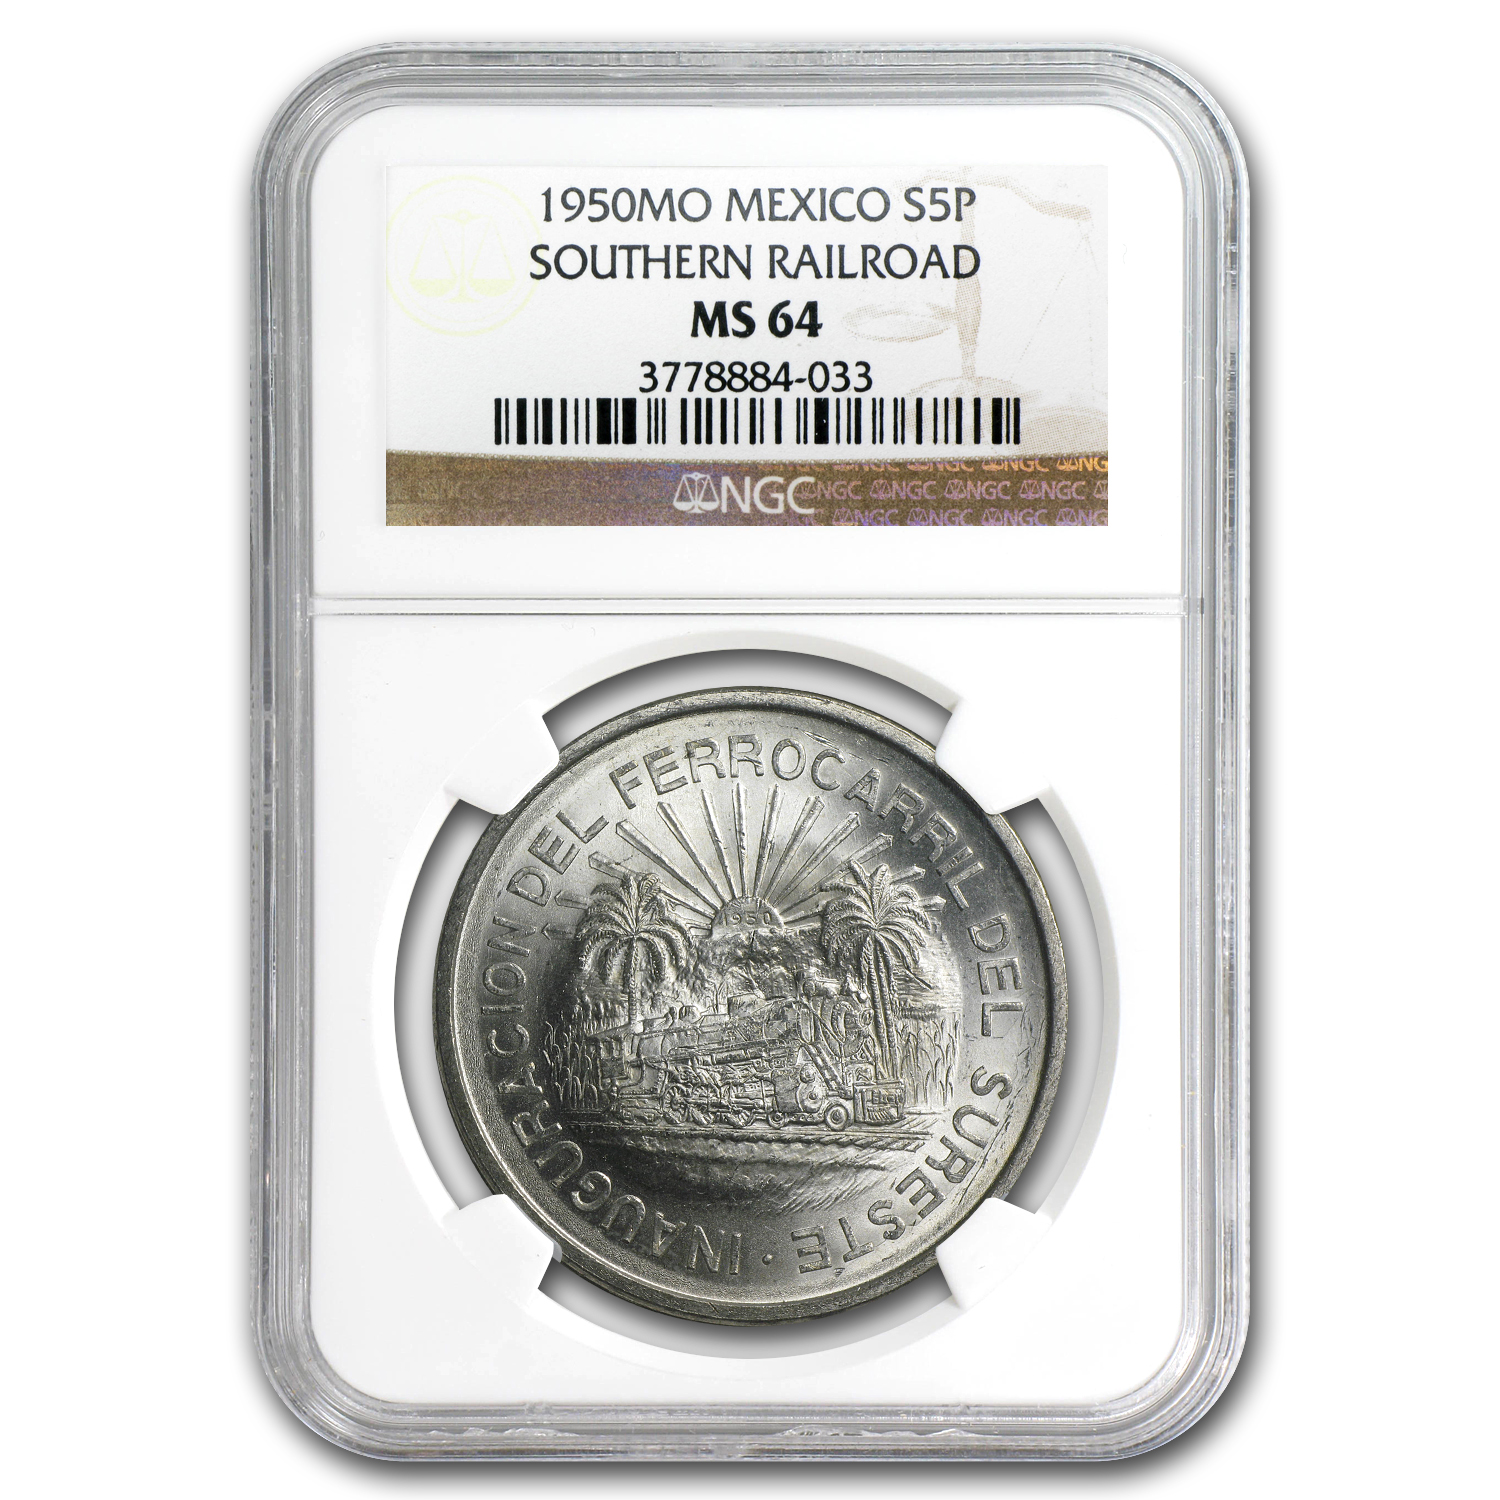 1950 Mexico Silver 5 Pesos Southern Railroad MS-64 NGC